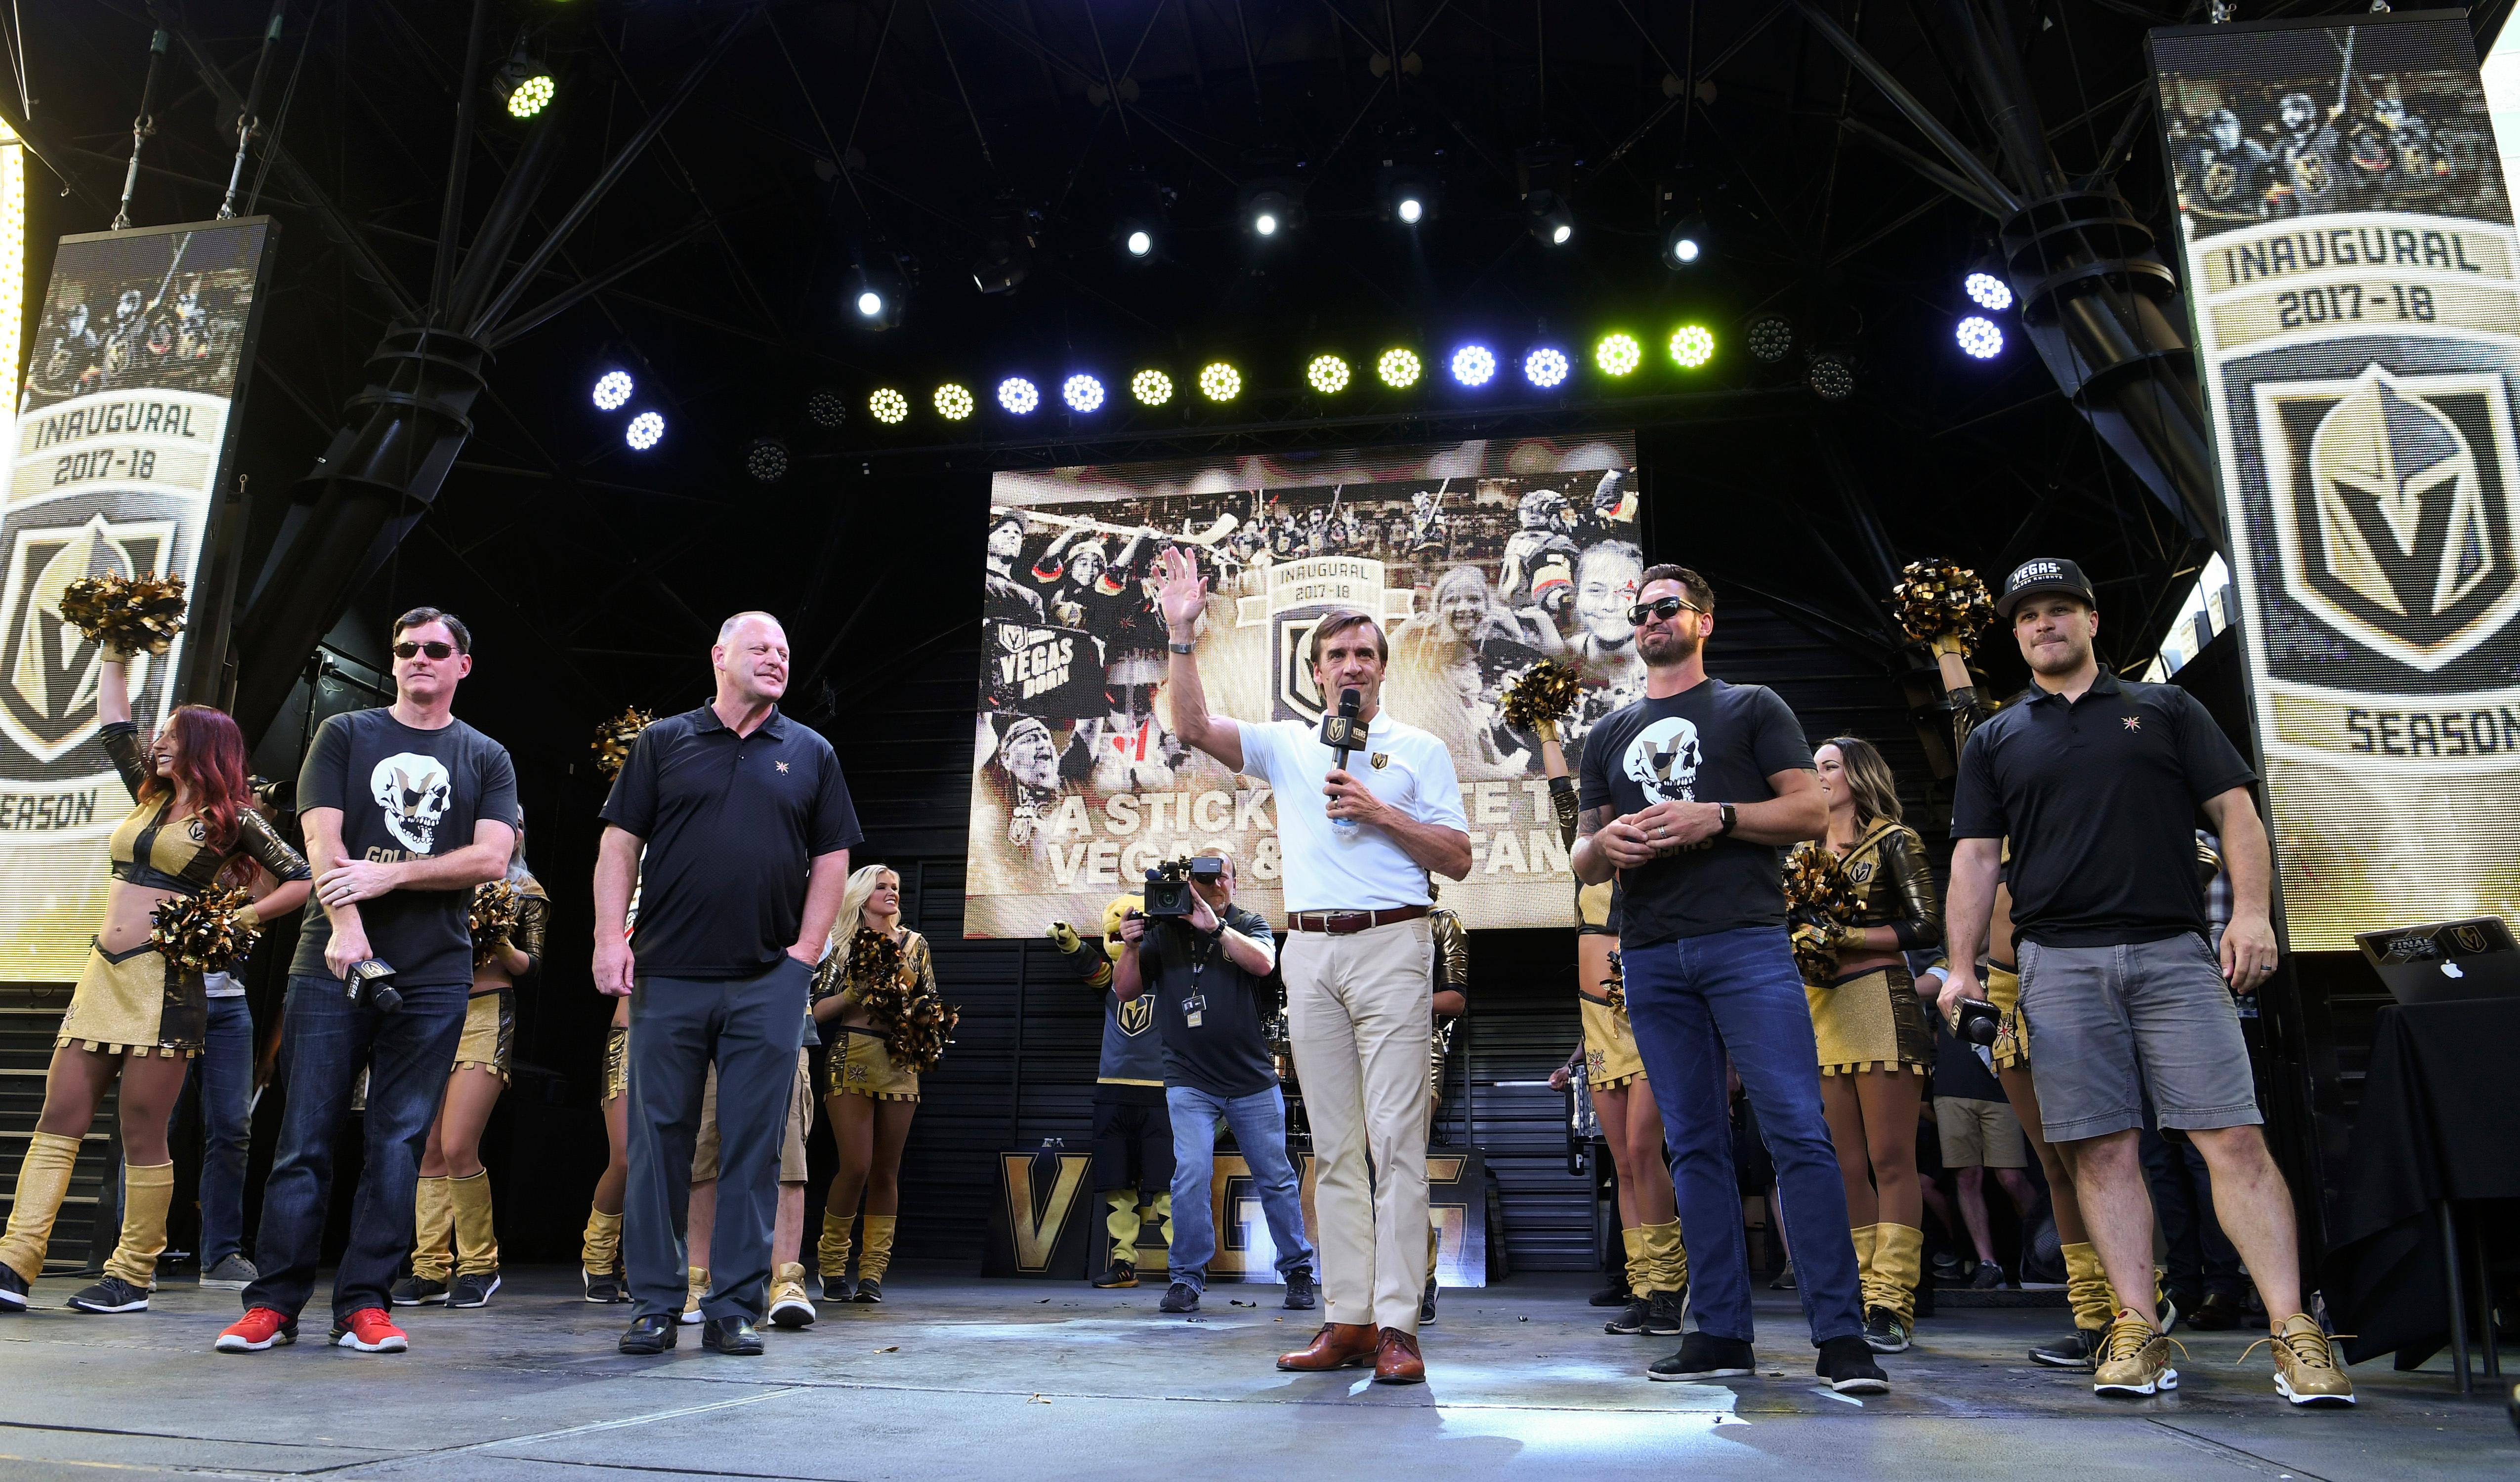 General Manager George McPhee salutes the crowd during a Vegas Golden Knights Stick Salute to Vegas fan appreciation rally at the Fremont Street Experience Wednesday, June 13, 2018. CREDIT: Sam Morris/Las Vegas News Bureau